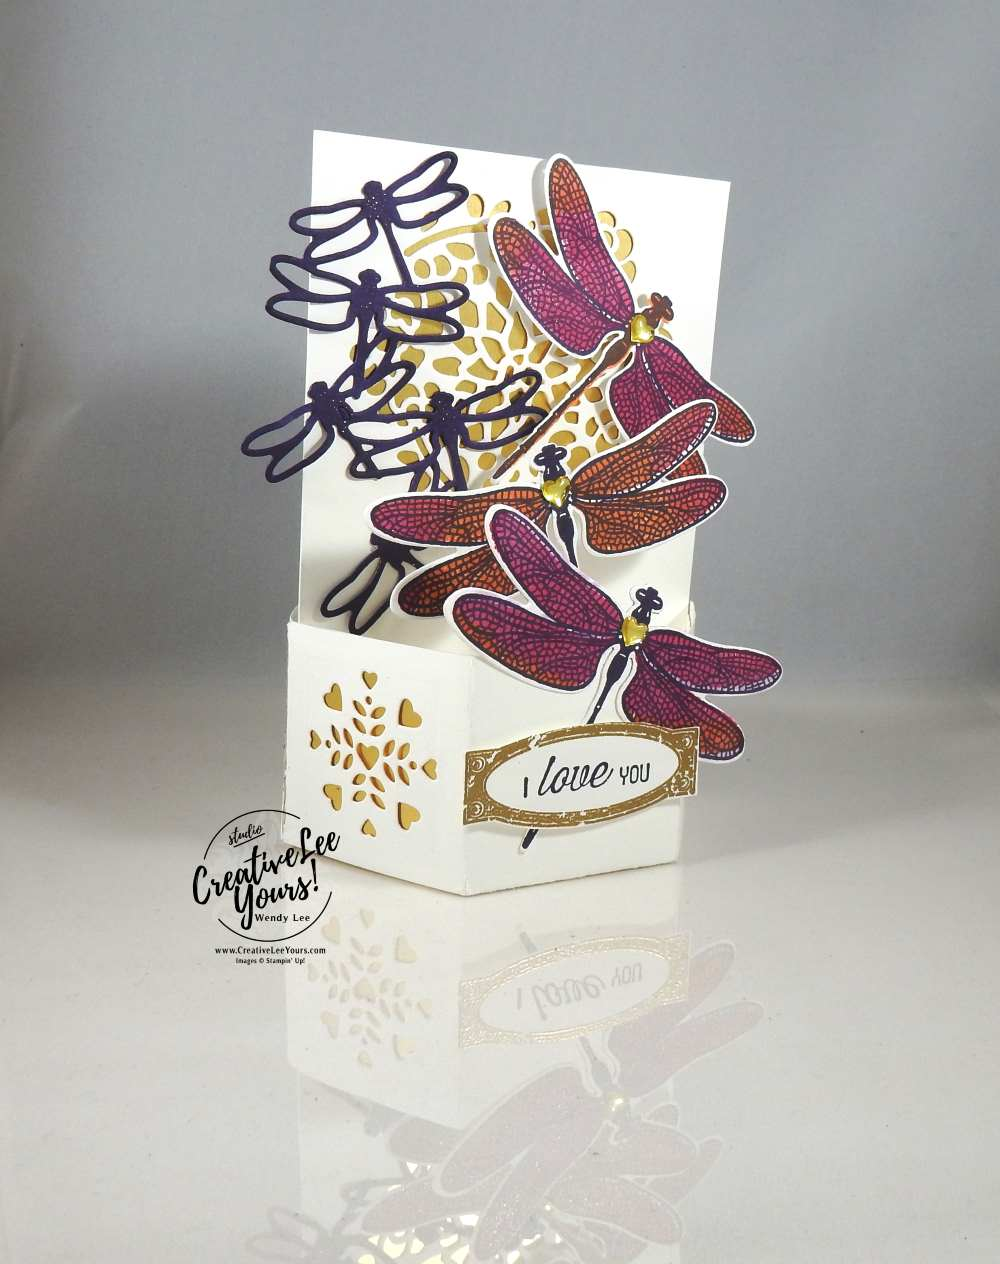 Hexagonal Base Pop-Up by Wendy Lee, Stampin Up, #creativeleeyours, creatively yours, April 2017 FMN class, Dragonfly Dreams Stamp set, Awesomely Artistic stamp set, Flourishing phrases stamp set, detailed dragonfly thinlits,windowbox thinlits, mothers day, pop-up card